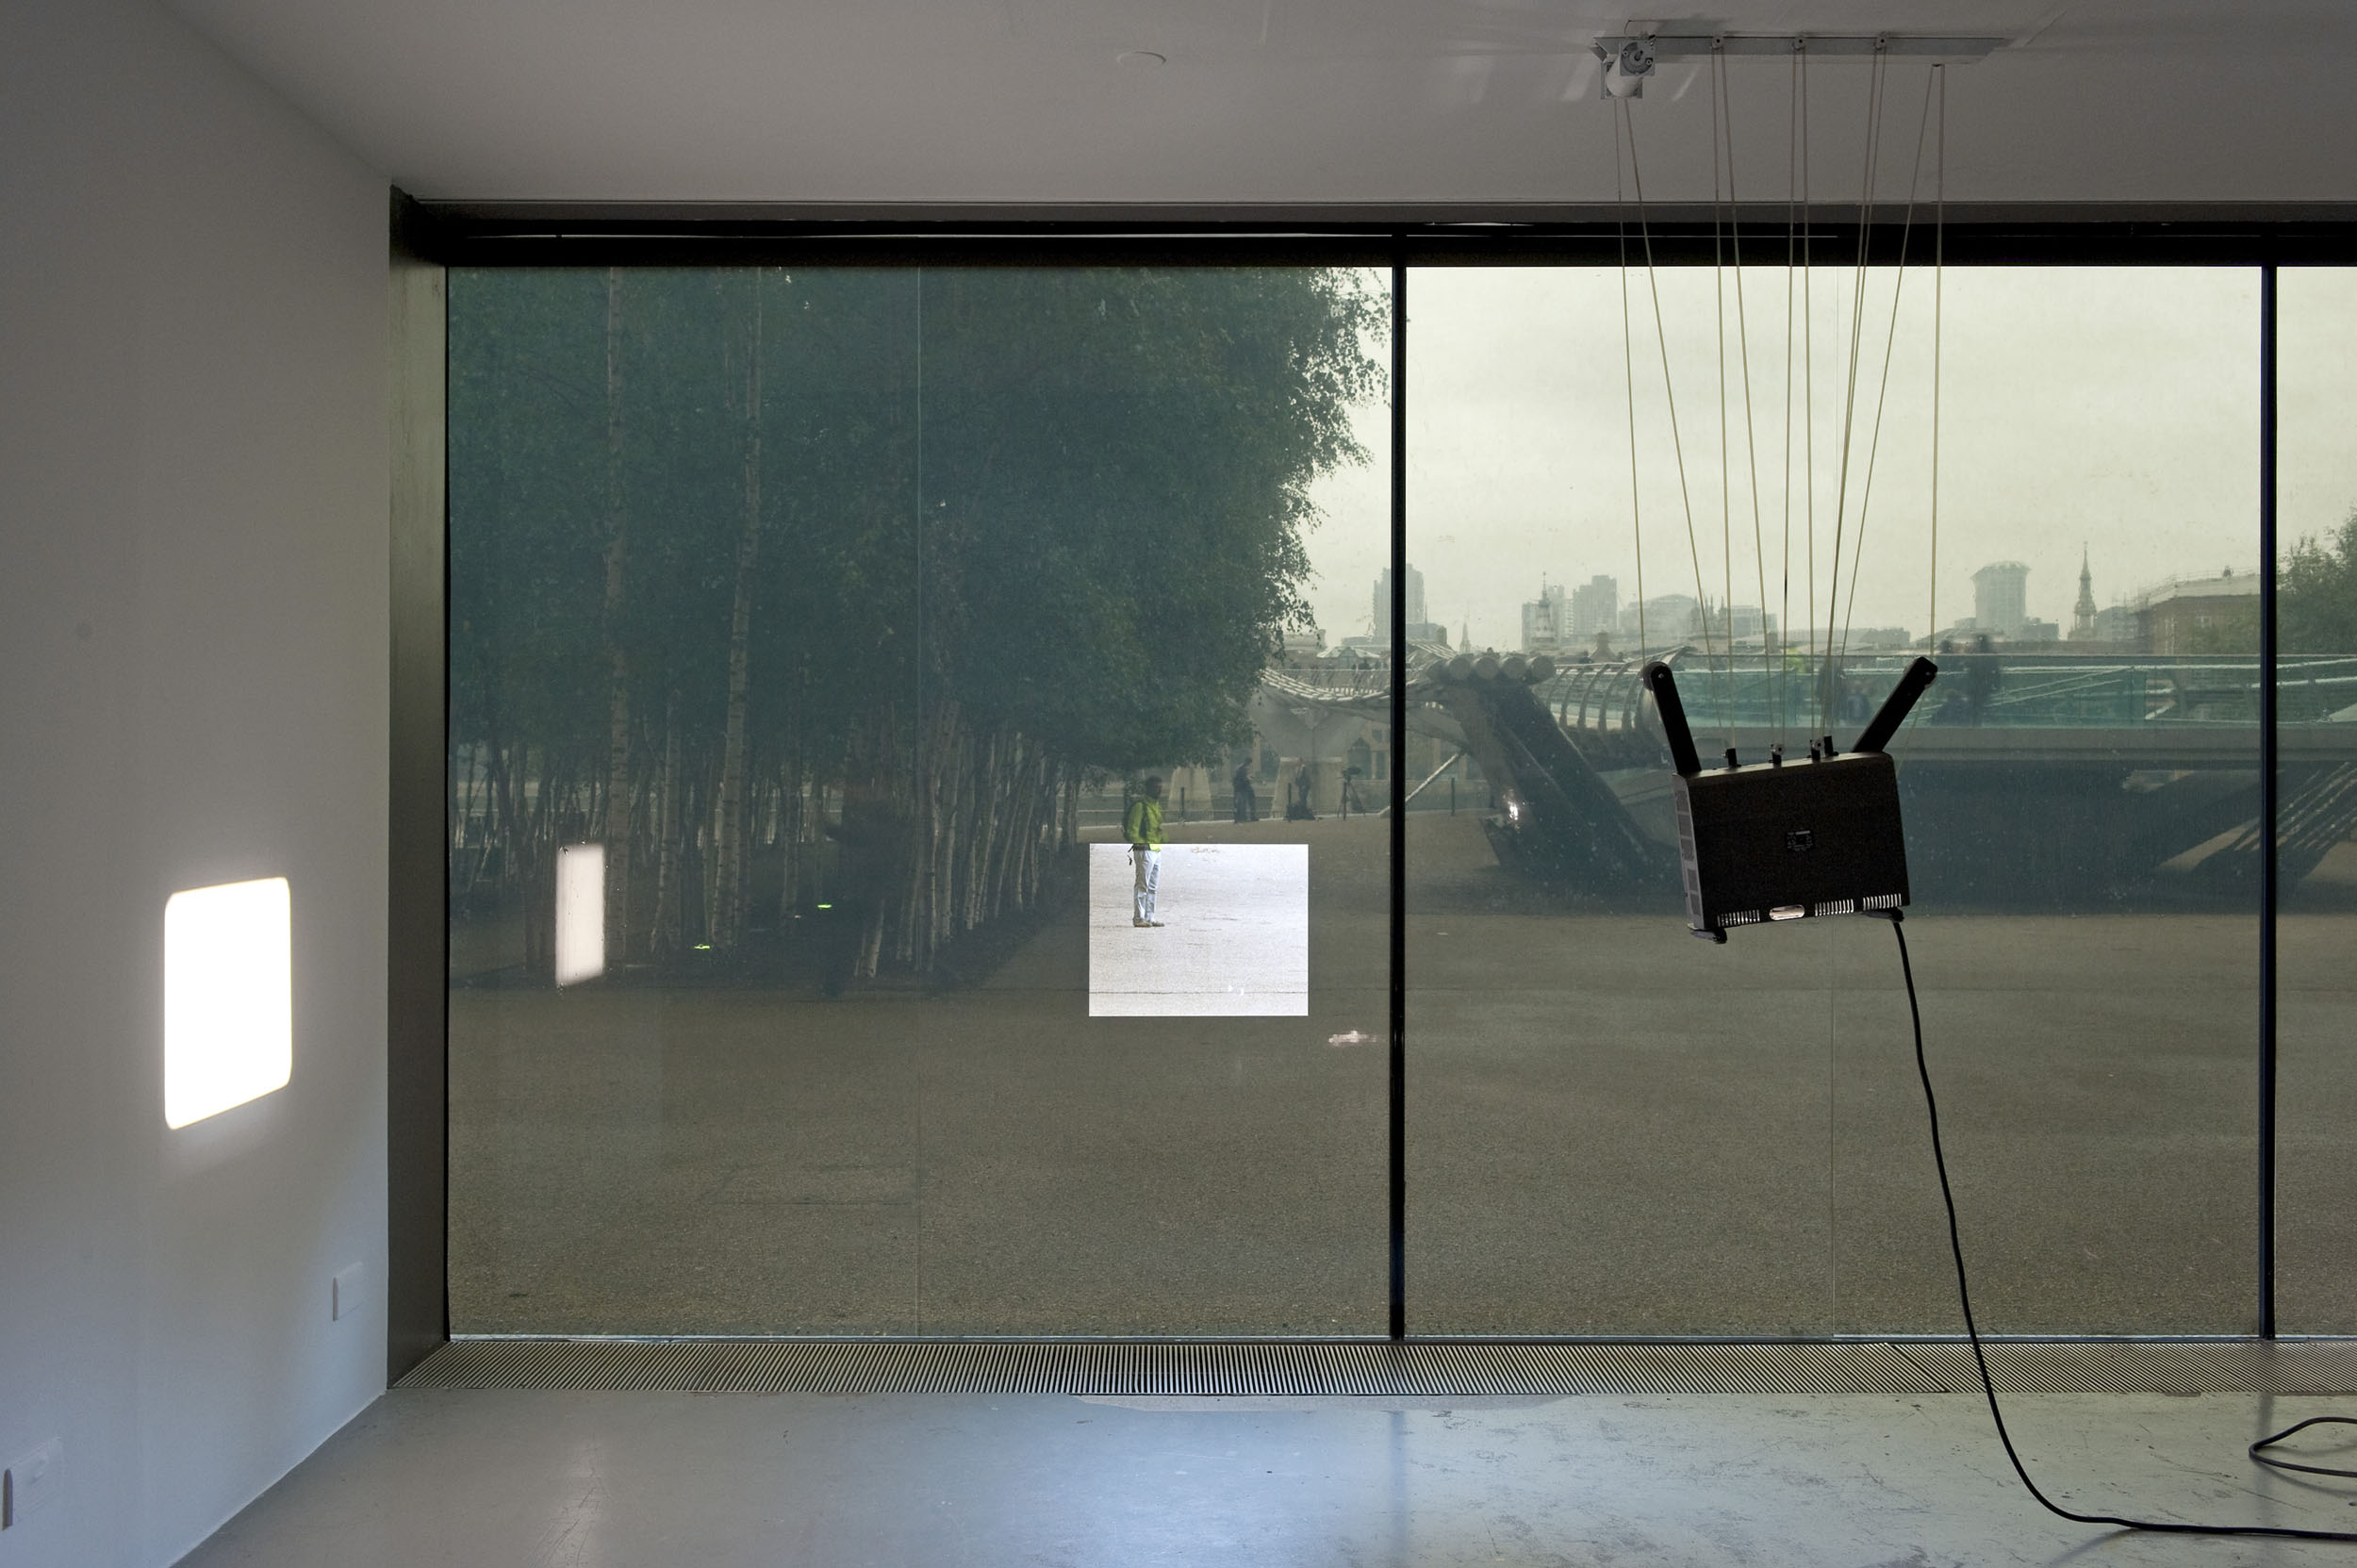 RB_2010_StatingTheRealSublime_exhibview_Tate_London_13.jpg